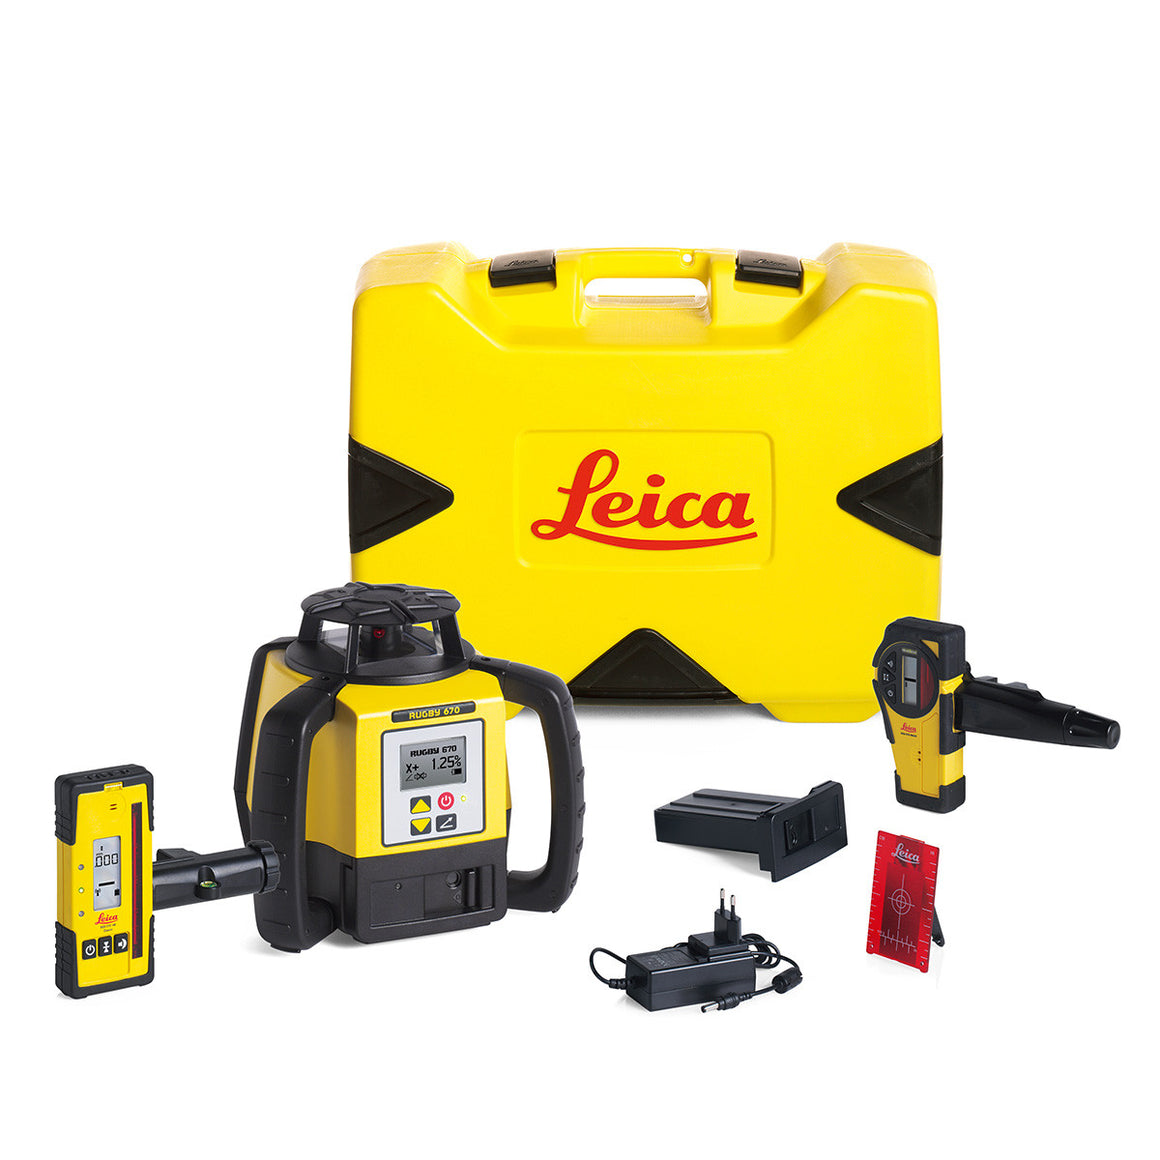 Leica Rugby 670 Single Grade Laser Level